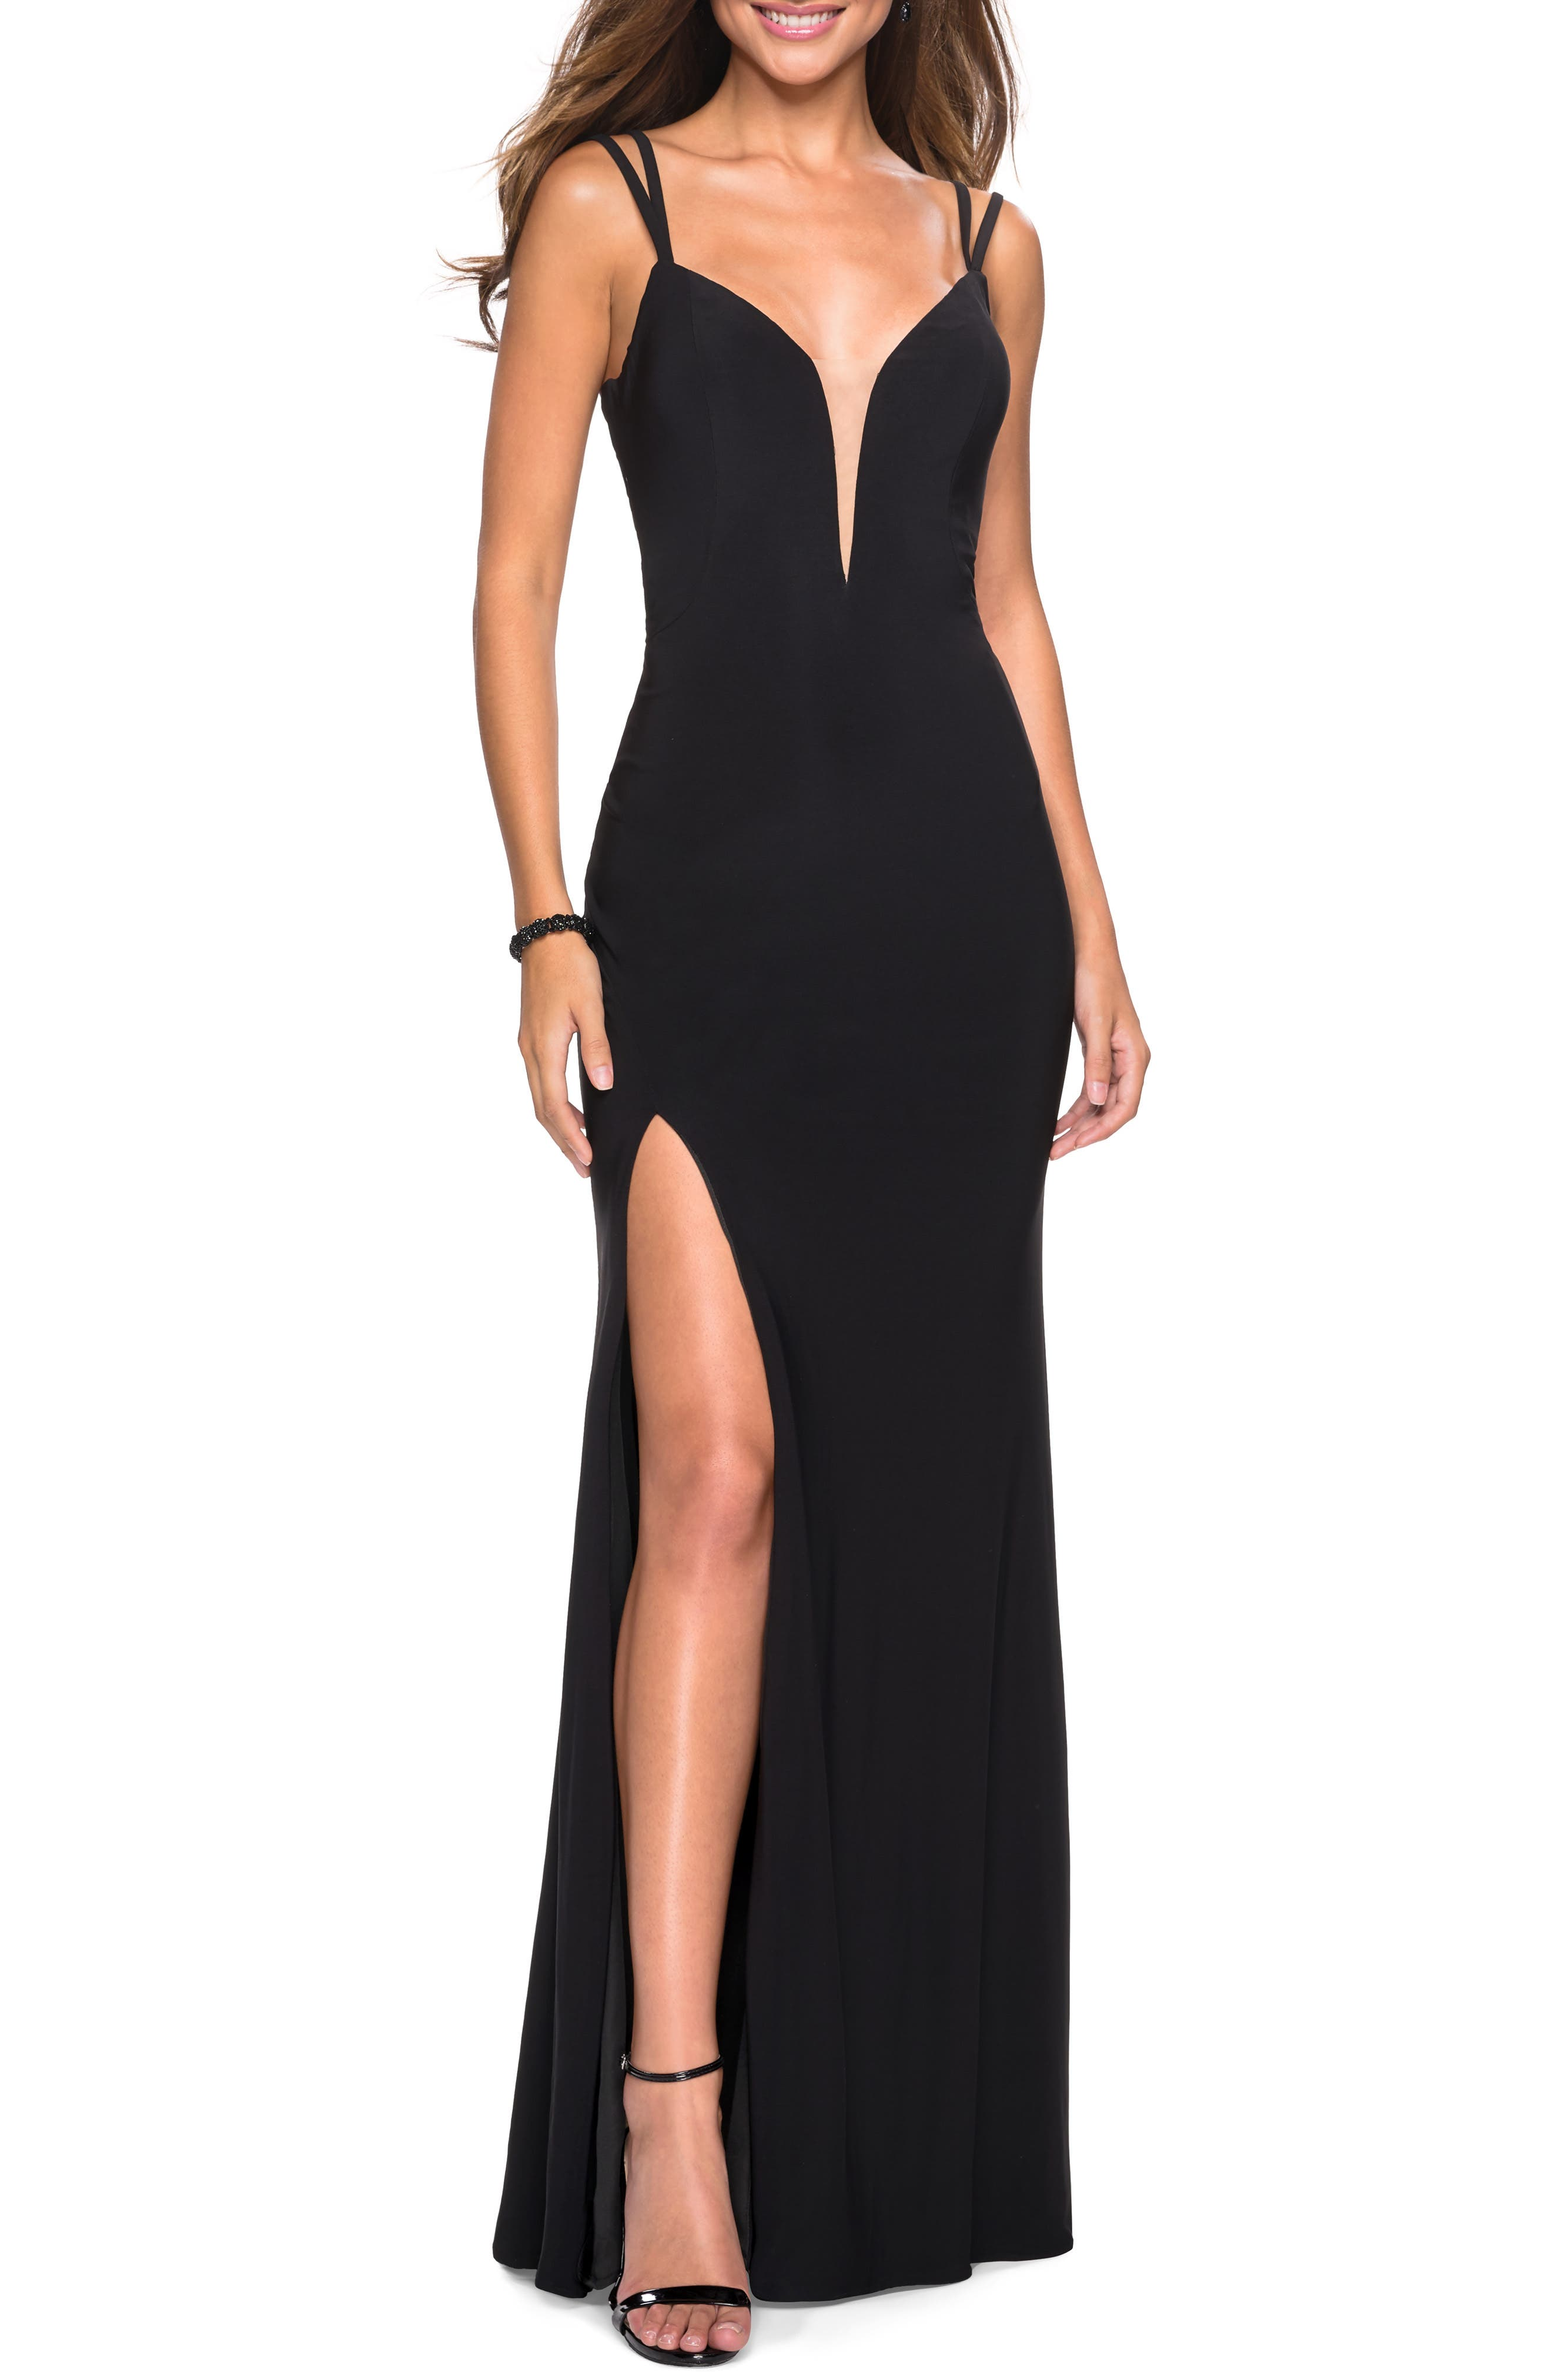 La Femme Strappy Back Fitted Jersey Evening Dress, Black